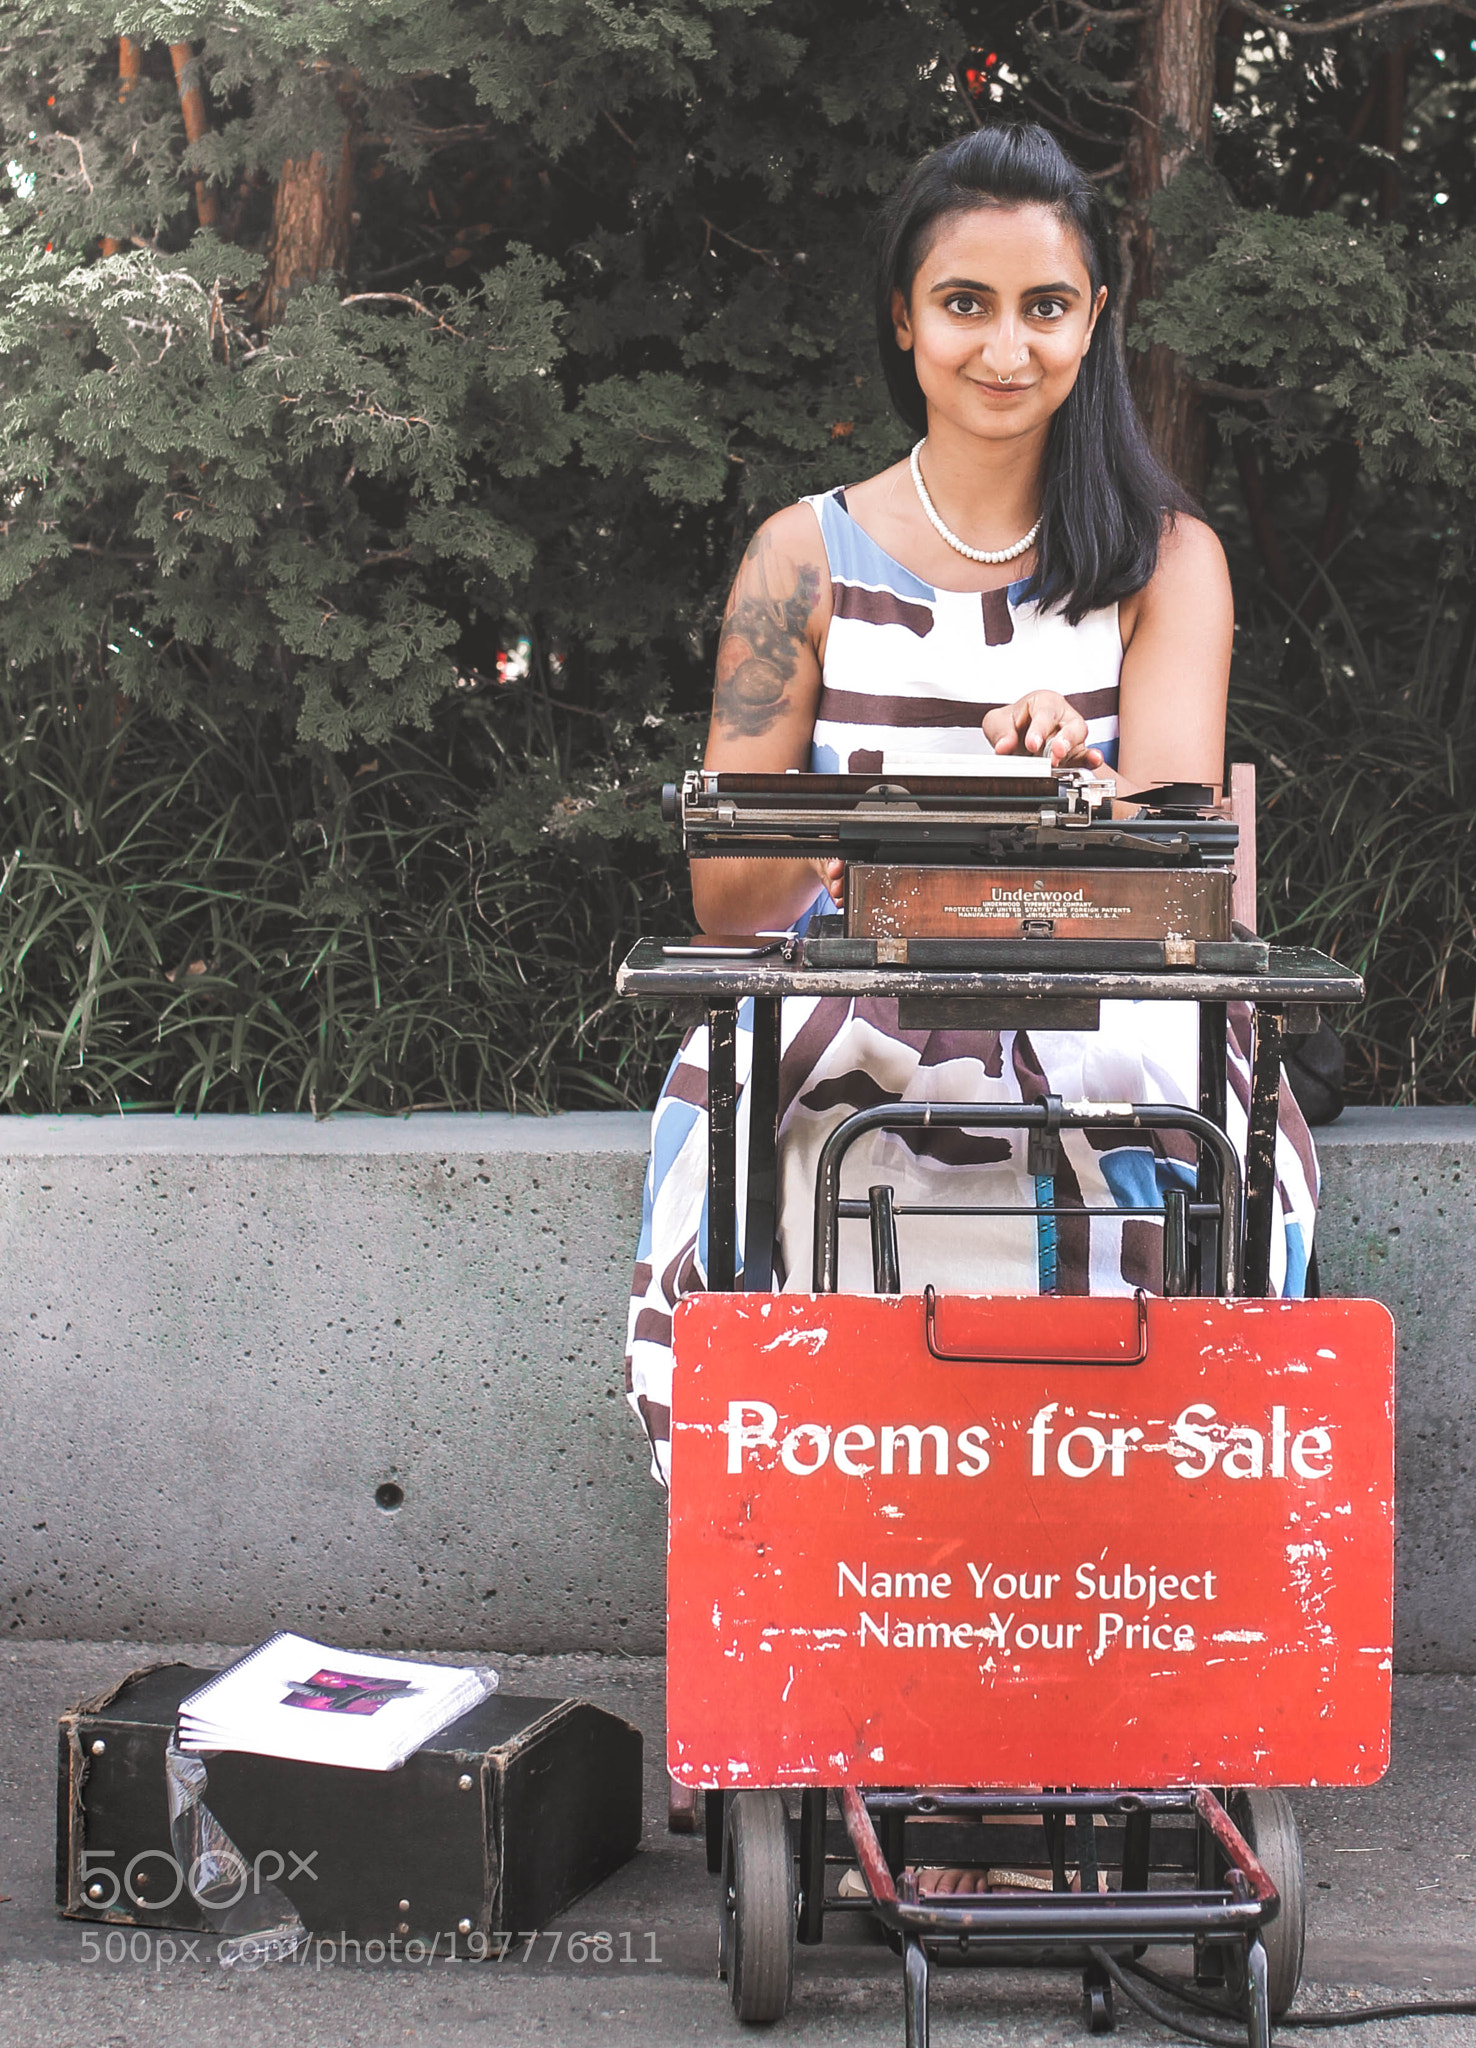 Poems for Sale